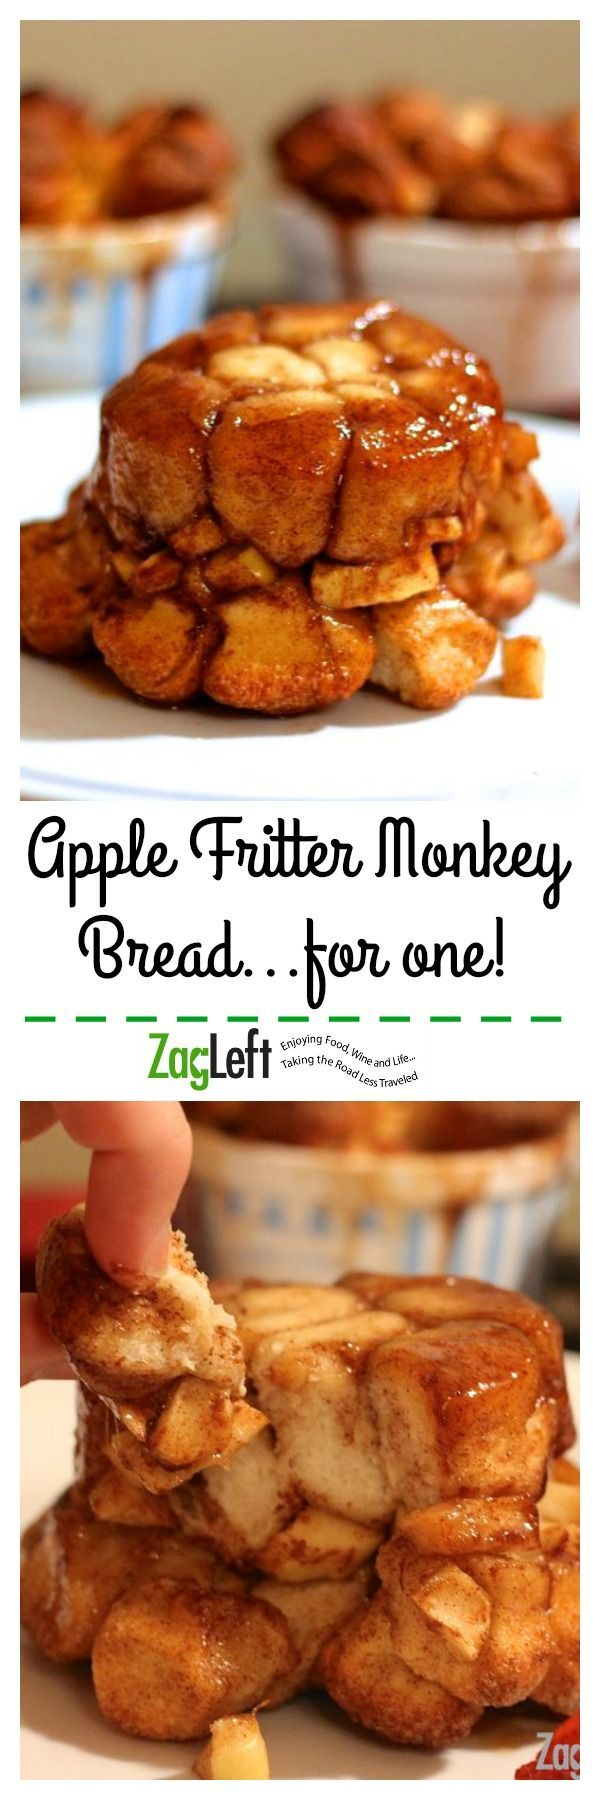 Fritter Monkey Bread Apple Fritter Monkey Bread made with refrigerator biscuits is a single serving size of sweet pull-apart bread stuffed with layers of apples and brown sugar... Apple Fritter Monkey Bread made with refrigerator biscuits is a single serving size of sweet pull-apart bread stuffed with layers of apples and brown sugar...